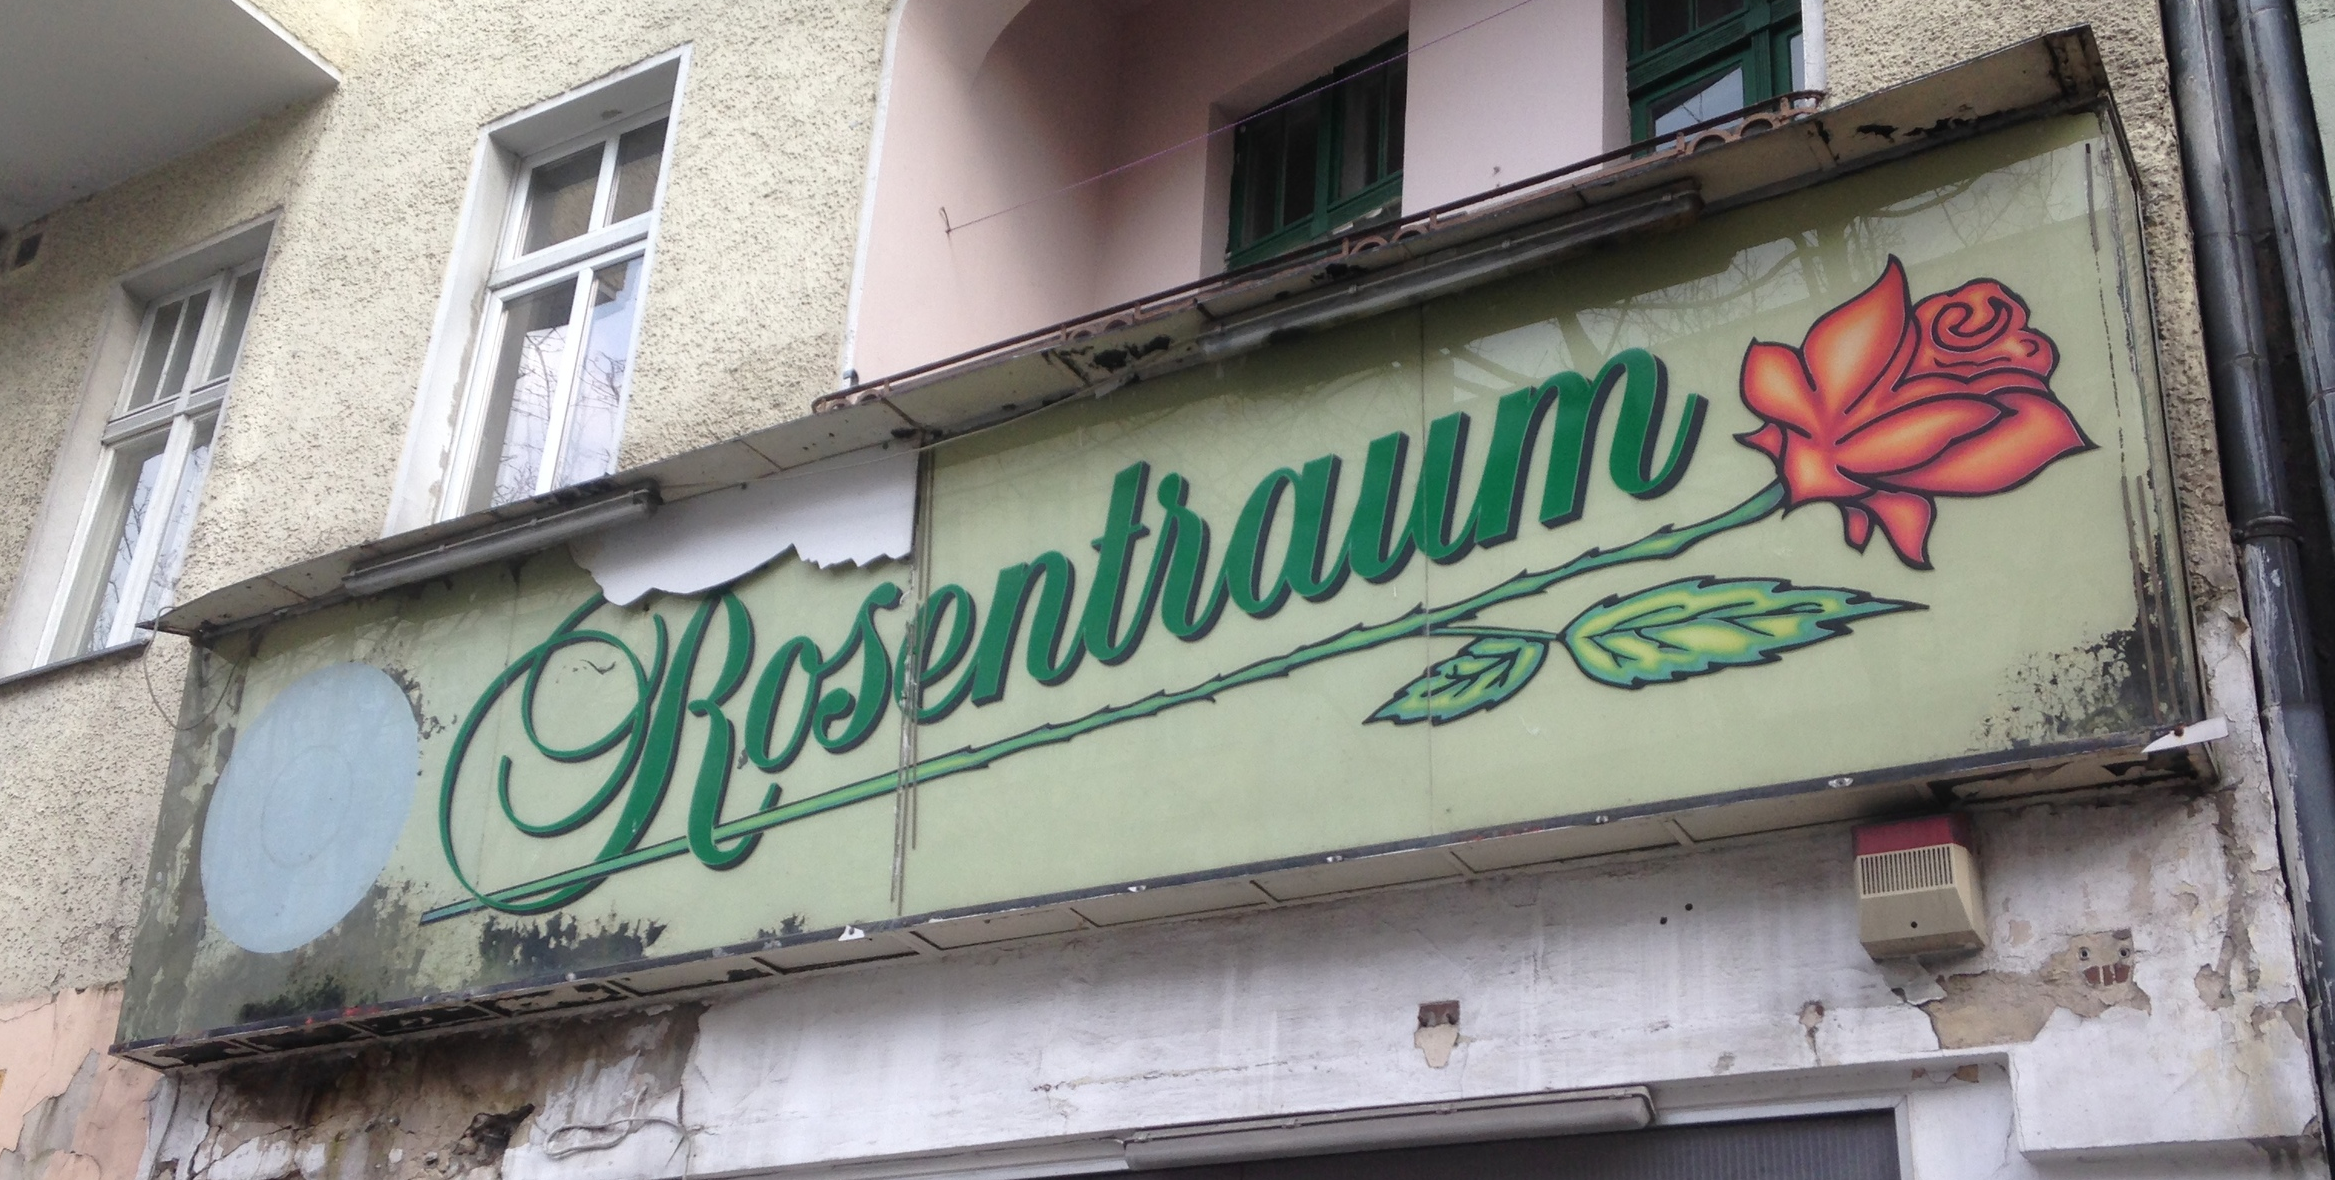 Rosentraum, Beusselstraße, closing date unknown. Until renovations began in April 2016, the abandoned cafe below gave off an overpowering wild-animal scent from the cracks in its windows, potentially from urban foxes—a fairly common sight on upper Beusselstraße.